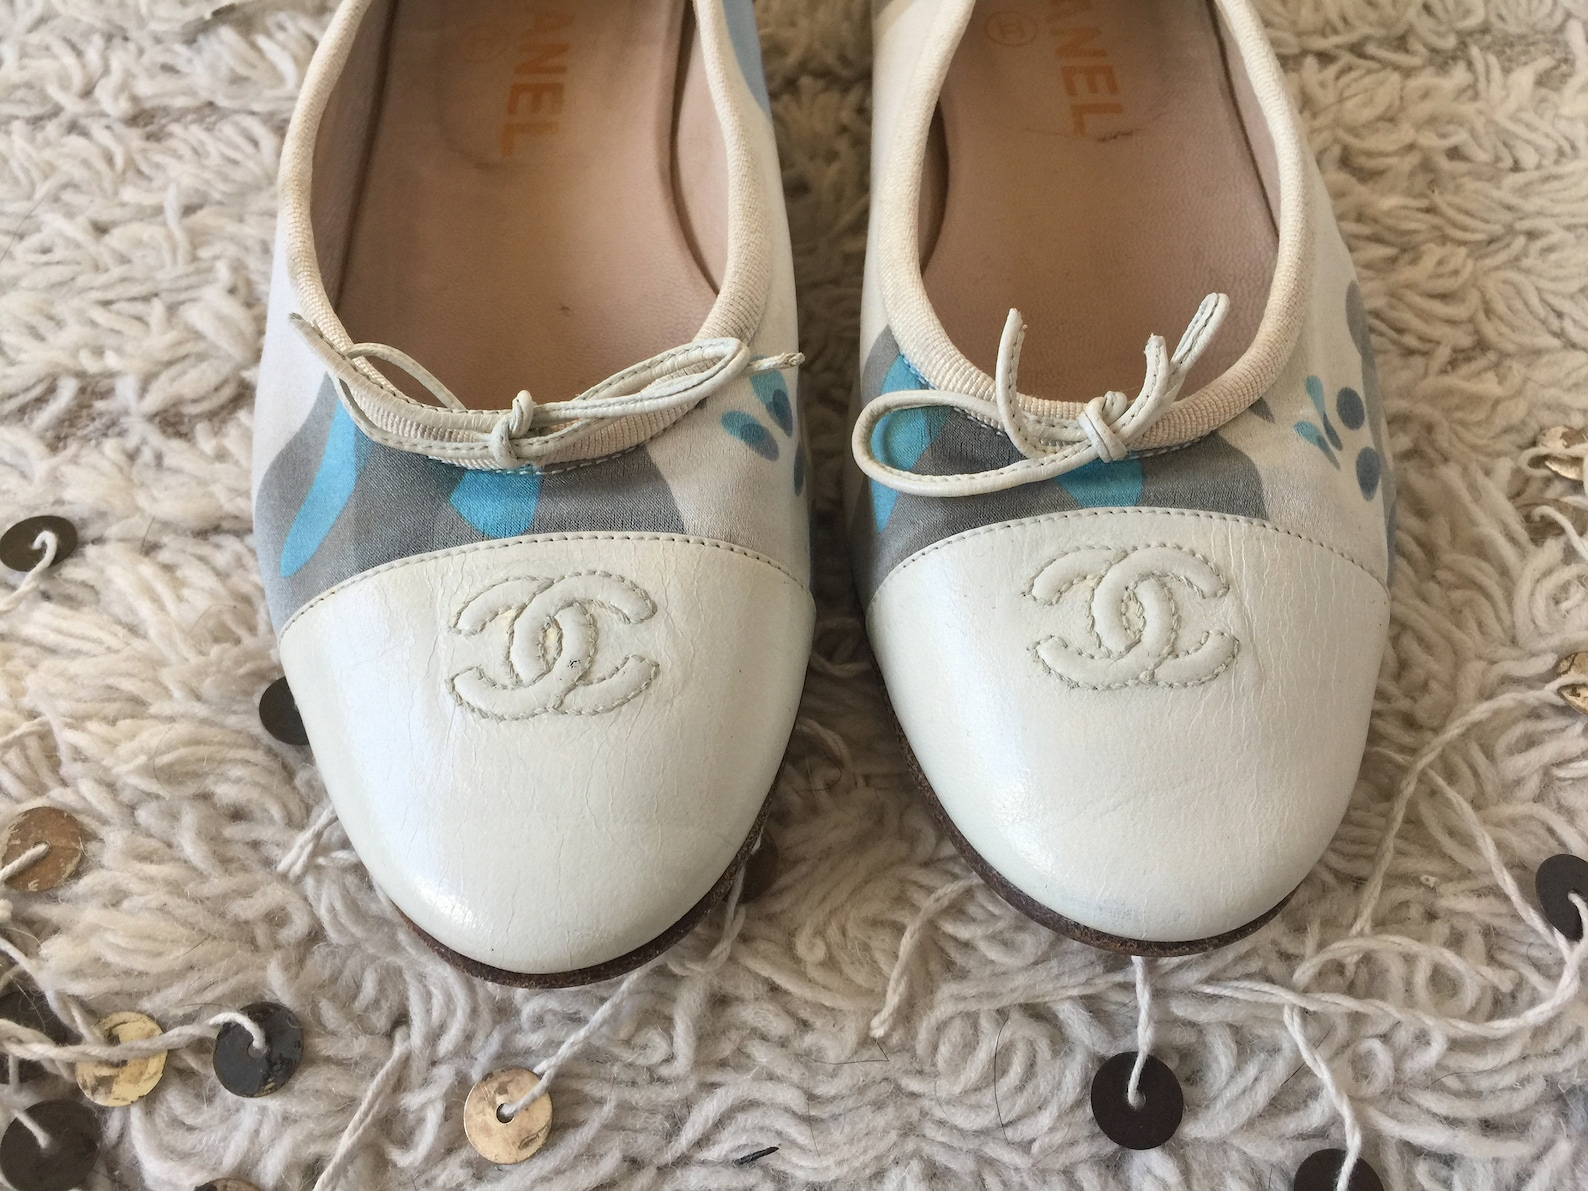 vintage chanel monogram cc logos script retro print & white leather cap toe ballet flats sandals slides slip on shoes eu 39 us 7